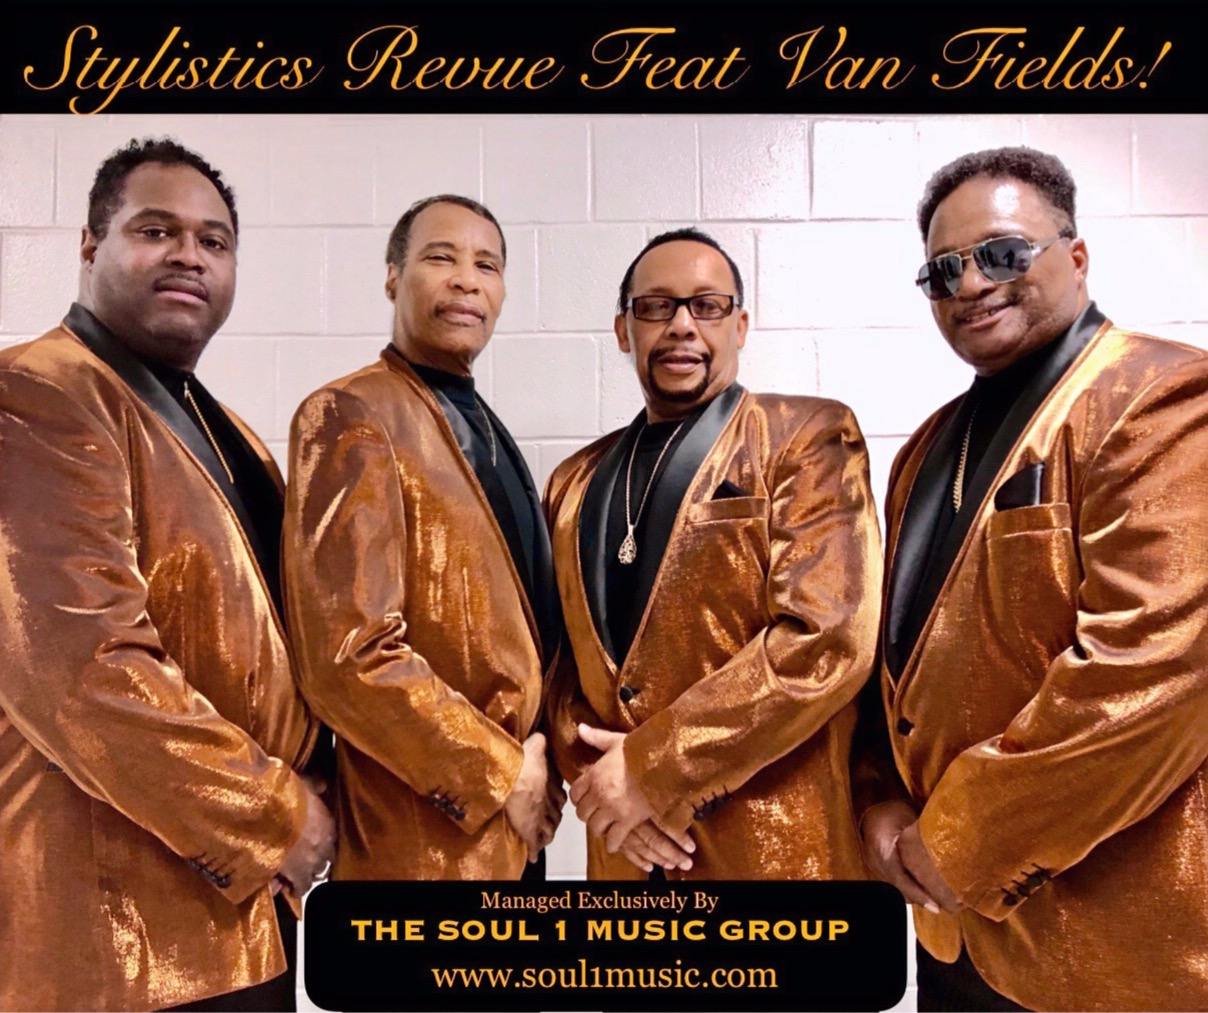 STYLISTICS LIVE Feat Van Fields!